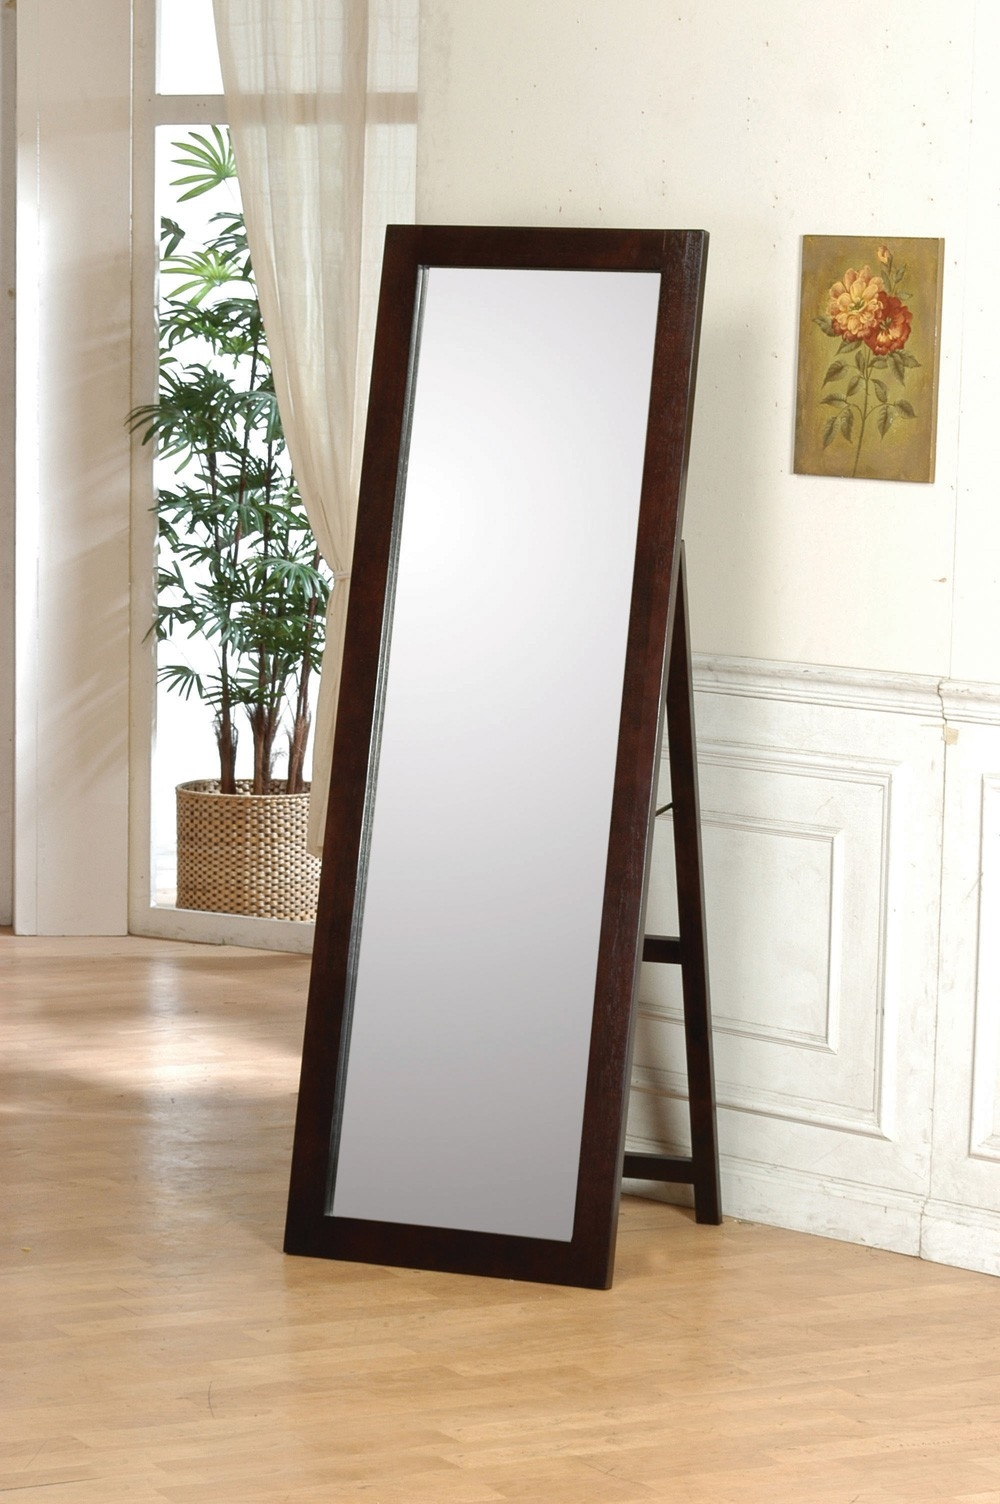 Tall 7ft Mirrors For More Contemporary Looks Within Contemporary Floor Standing Mirrors (Image 15 of 15)